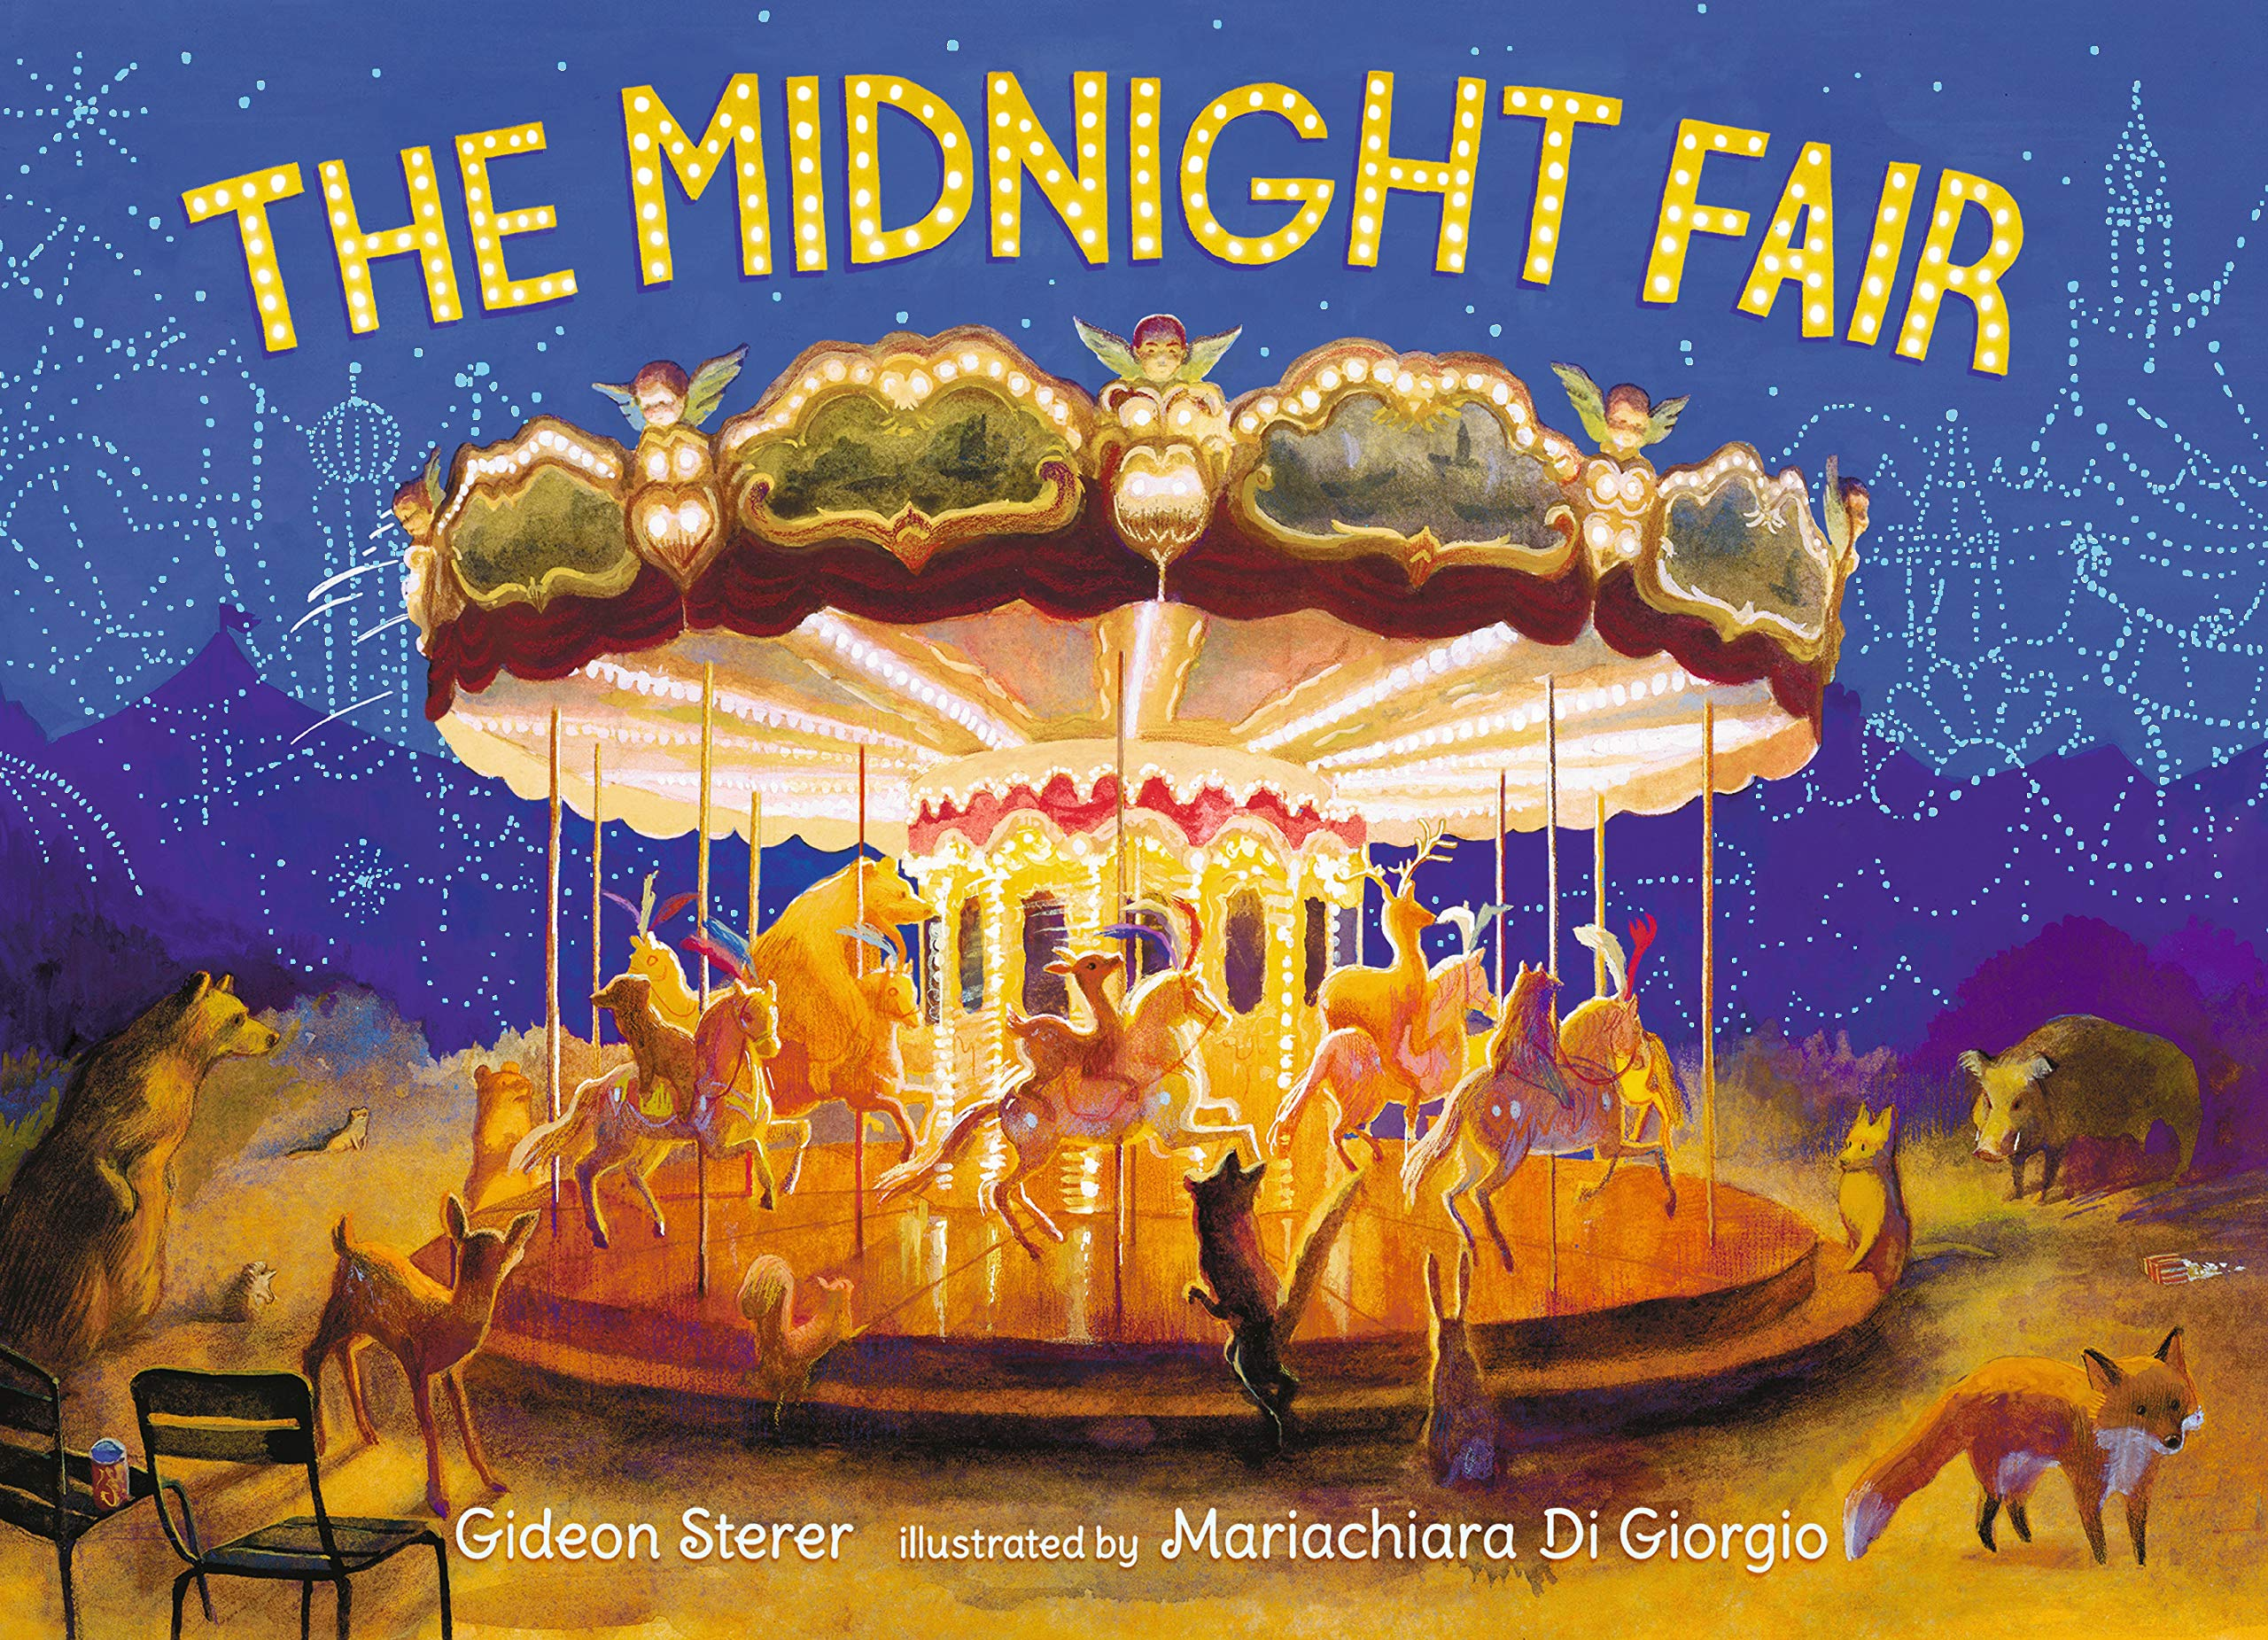 The Midnight Fair